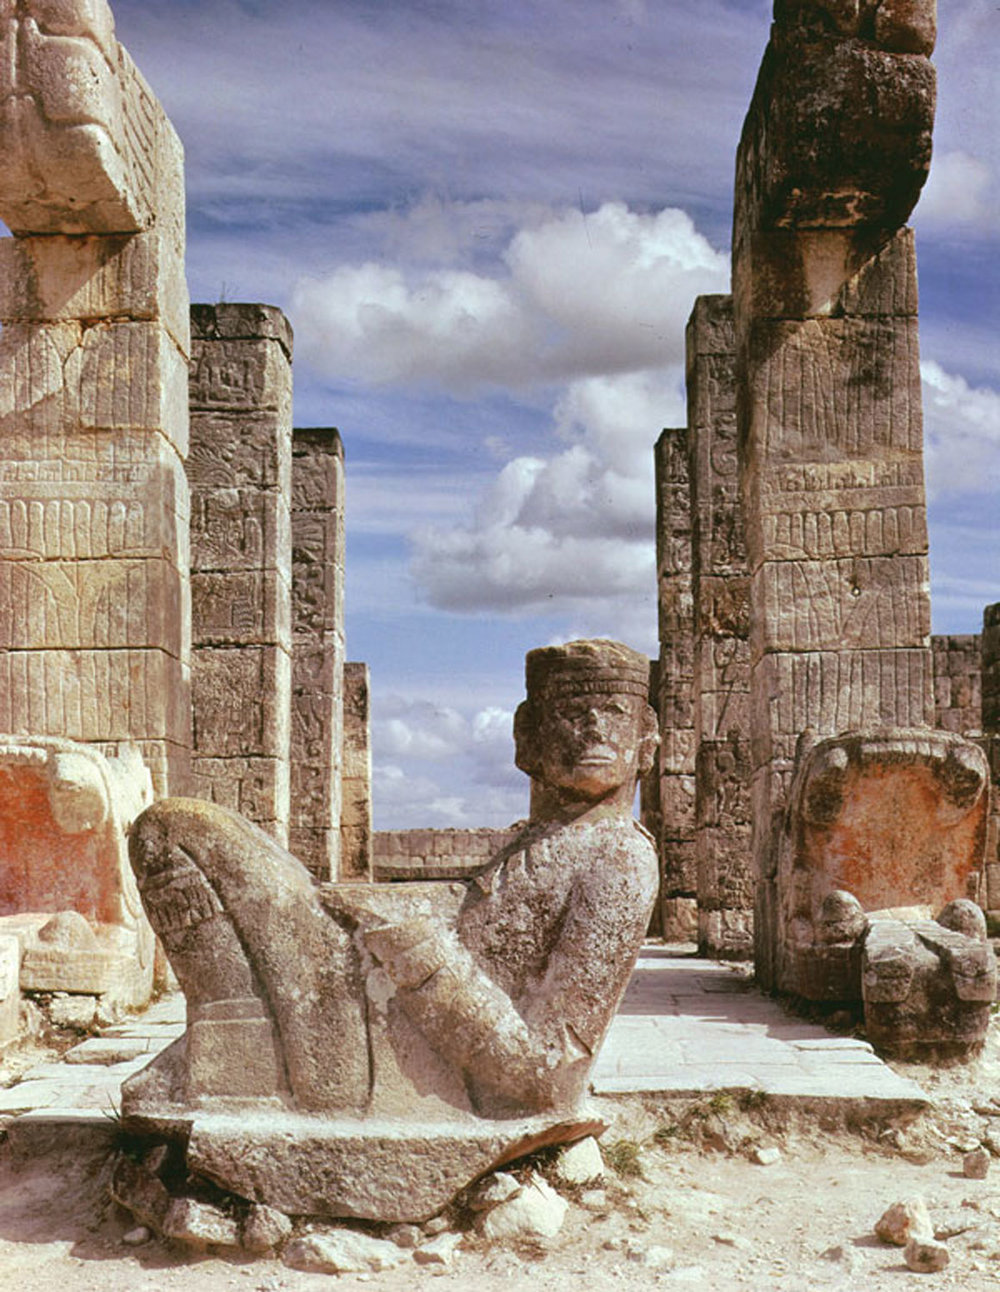 The initiate or Chac Mool, the messenger of the God of Rain, Chac? (Credit: Pinterest)